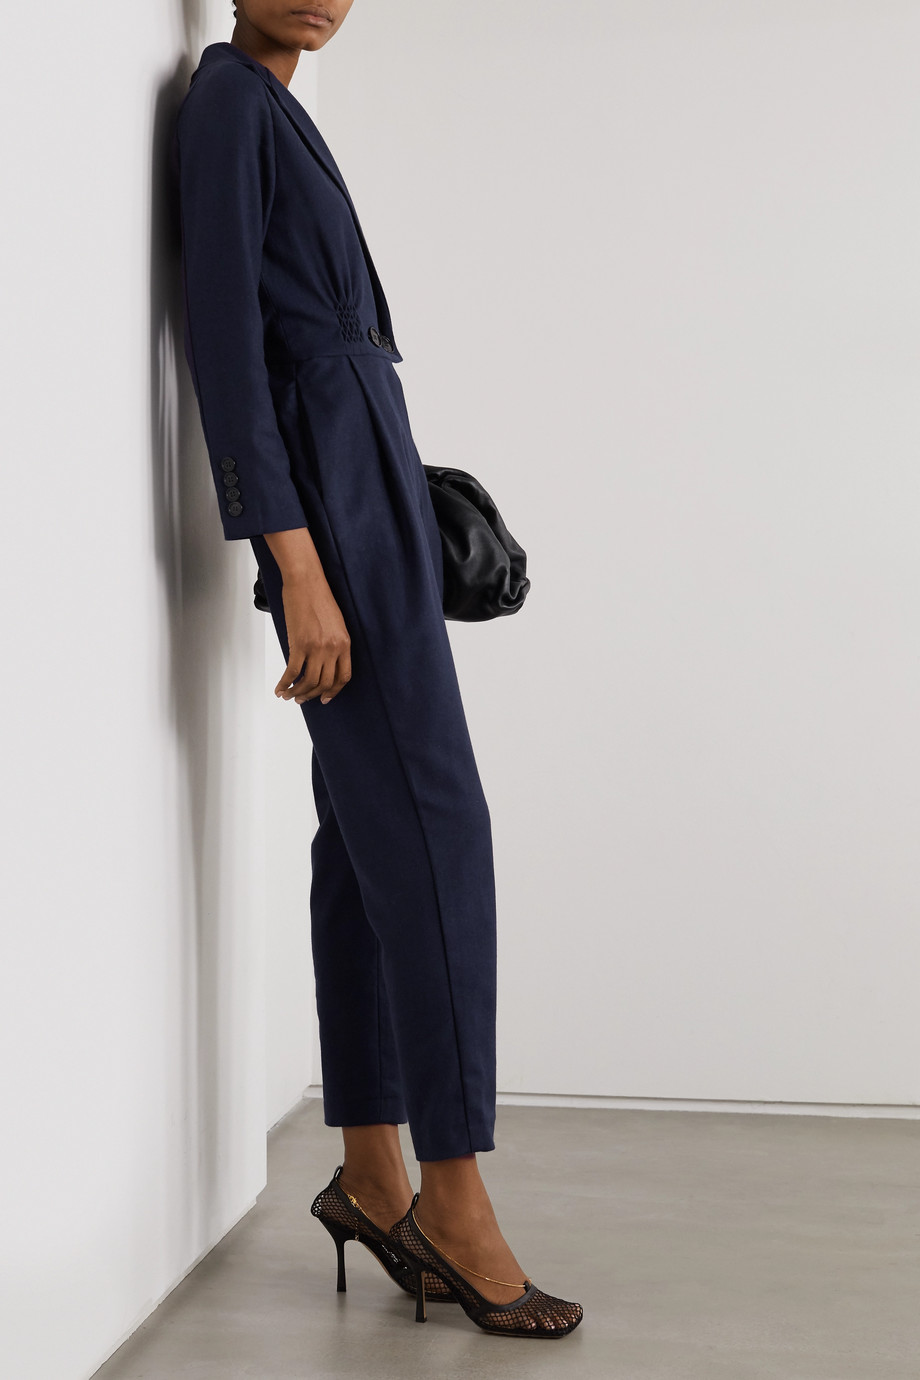 YOOX NET-A-PORTER FOR THE PRINCE'S FOUNDATION Double-breasted herringbone cashmere jumpsuit